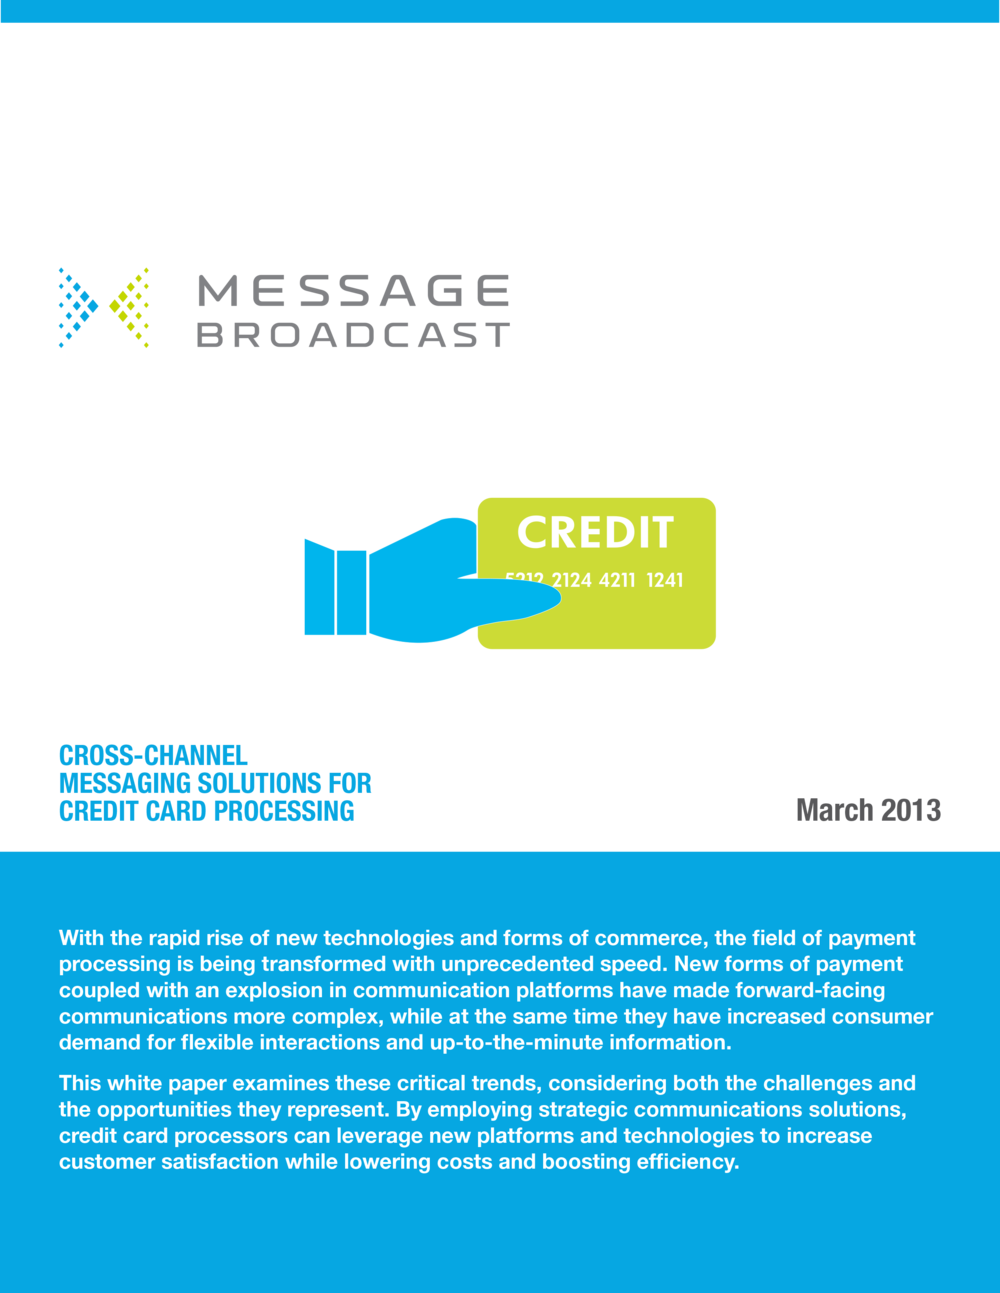 MessageBroadcast White Paper Credit Card_FC-1.png